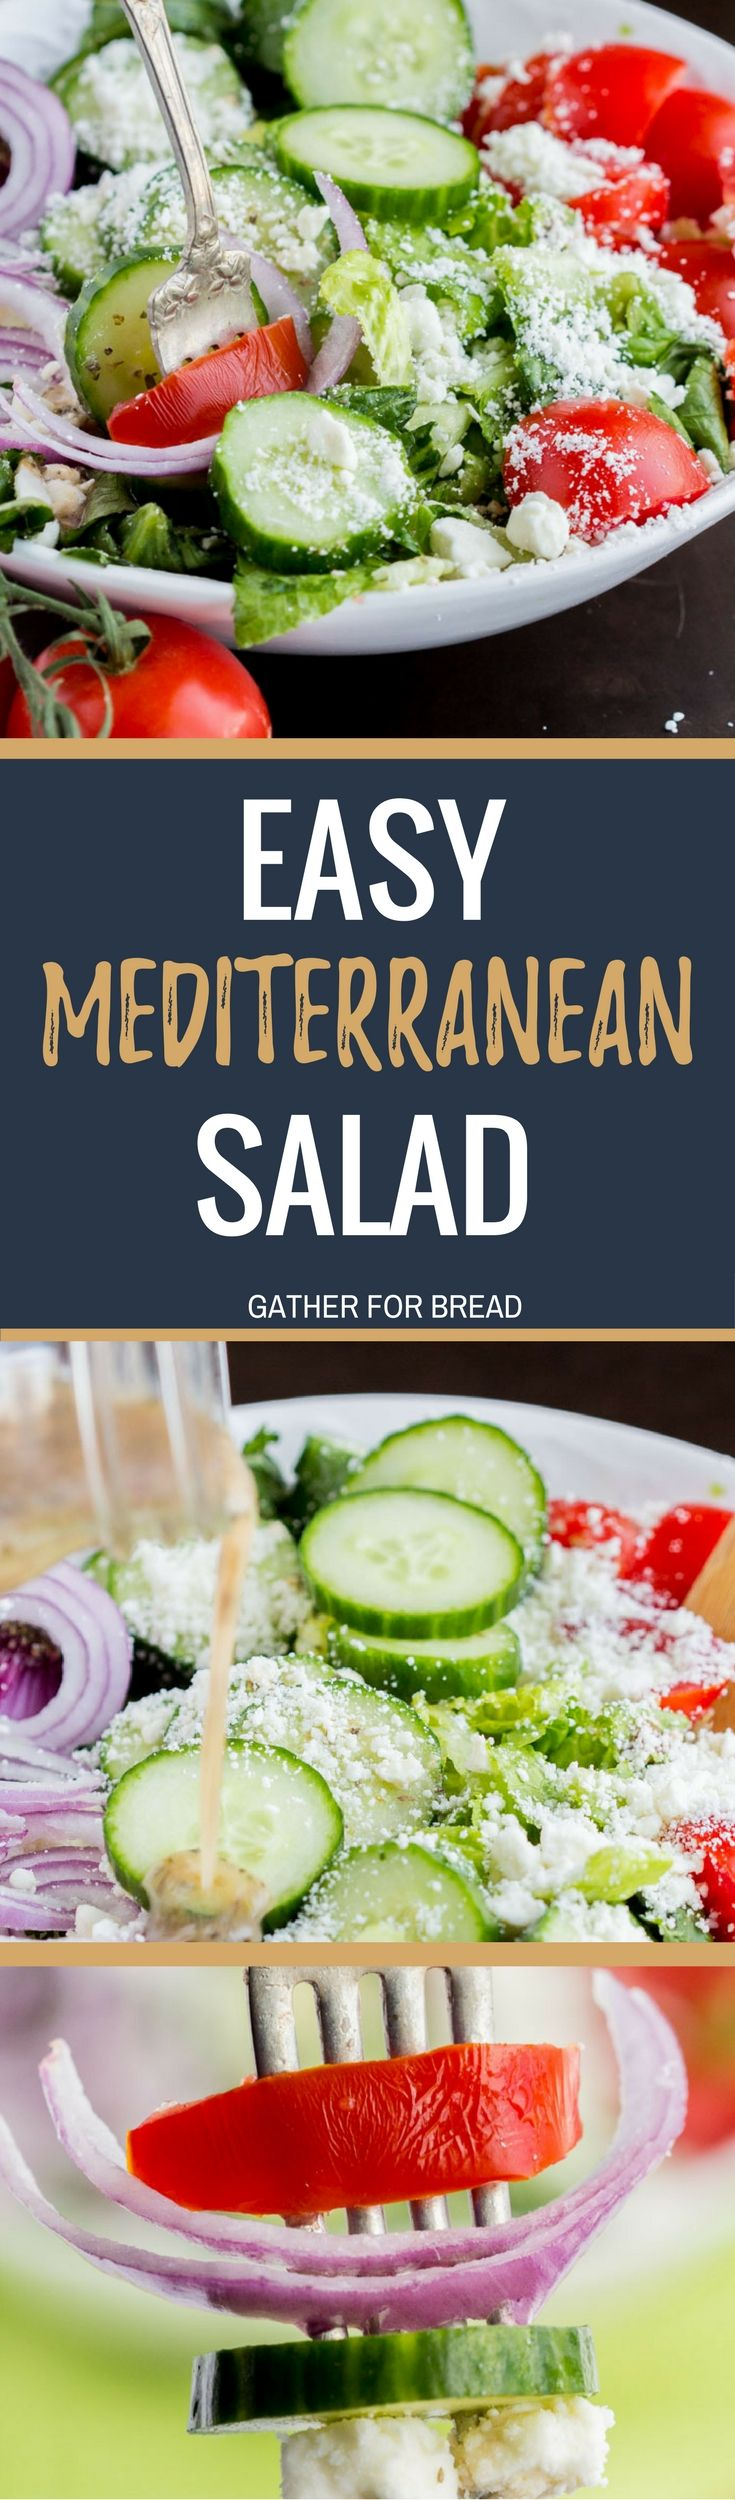 Easy Mediterranean Salad For Greek Dressing:  ¼ cup red wine vinegar  1 teaspoon garlic powder  1 teaspoon dried basil  Coupons  1 teaspoon dried oregano  1 teaspoon salt  1 Tablespoon Dijon mustard  ⅓ cup light olive oil  For Salad  2 romaine hearts, chopped  3 Roma or vine ripened tomatoes, chopped  1 English cucumber, sliced  1 red onion, peeled and sliced  4 ounces Feta cheese